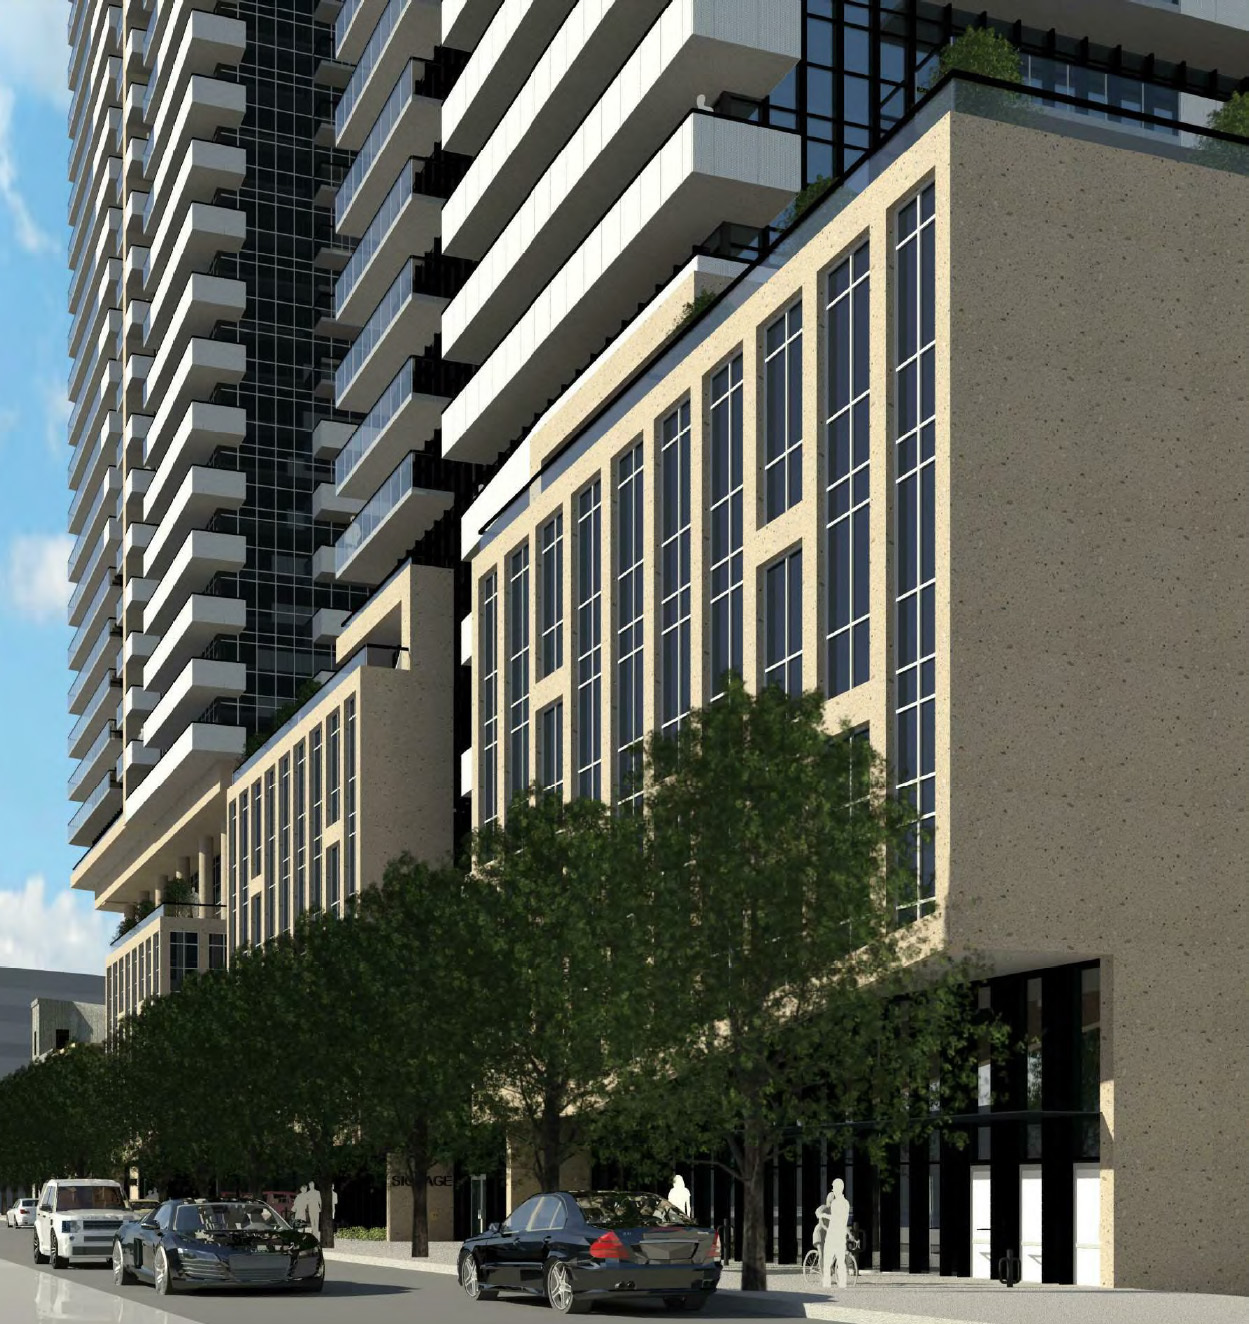 10-30 Dawes Rd, Toronto, designed by IBI Group for Marlin Spring Developments